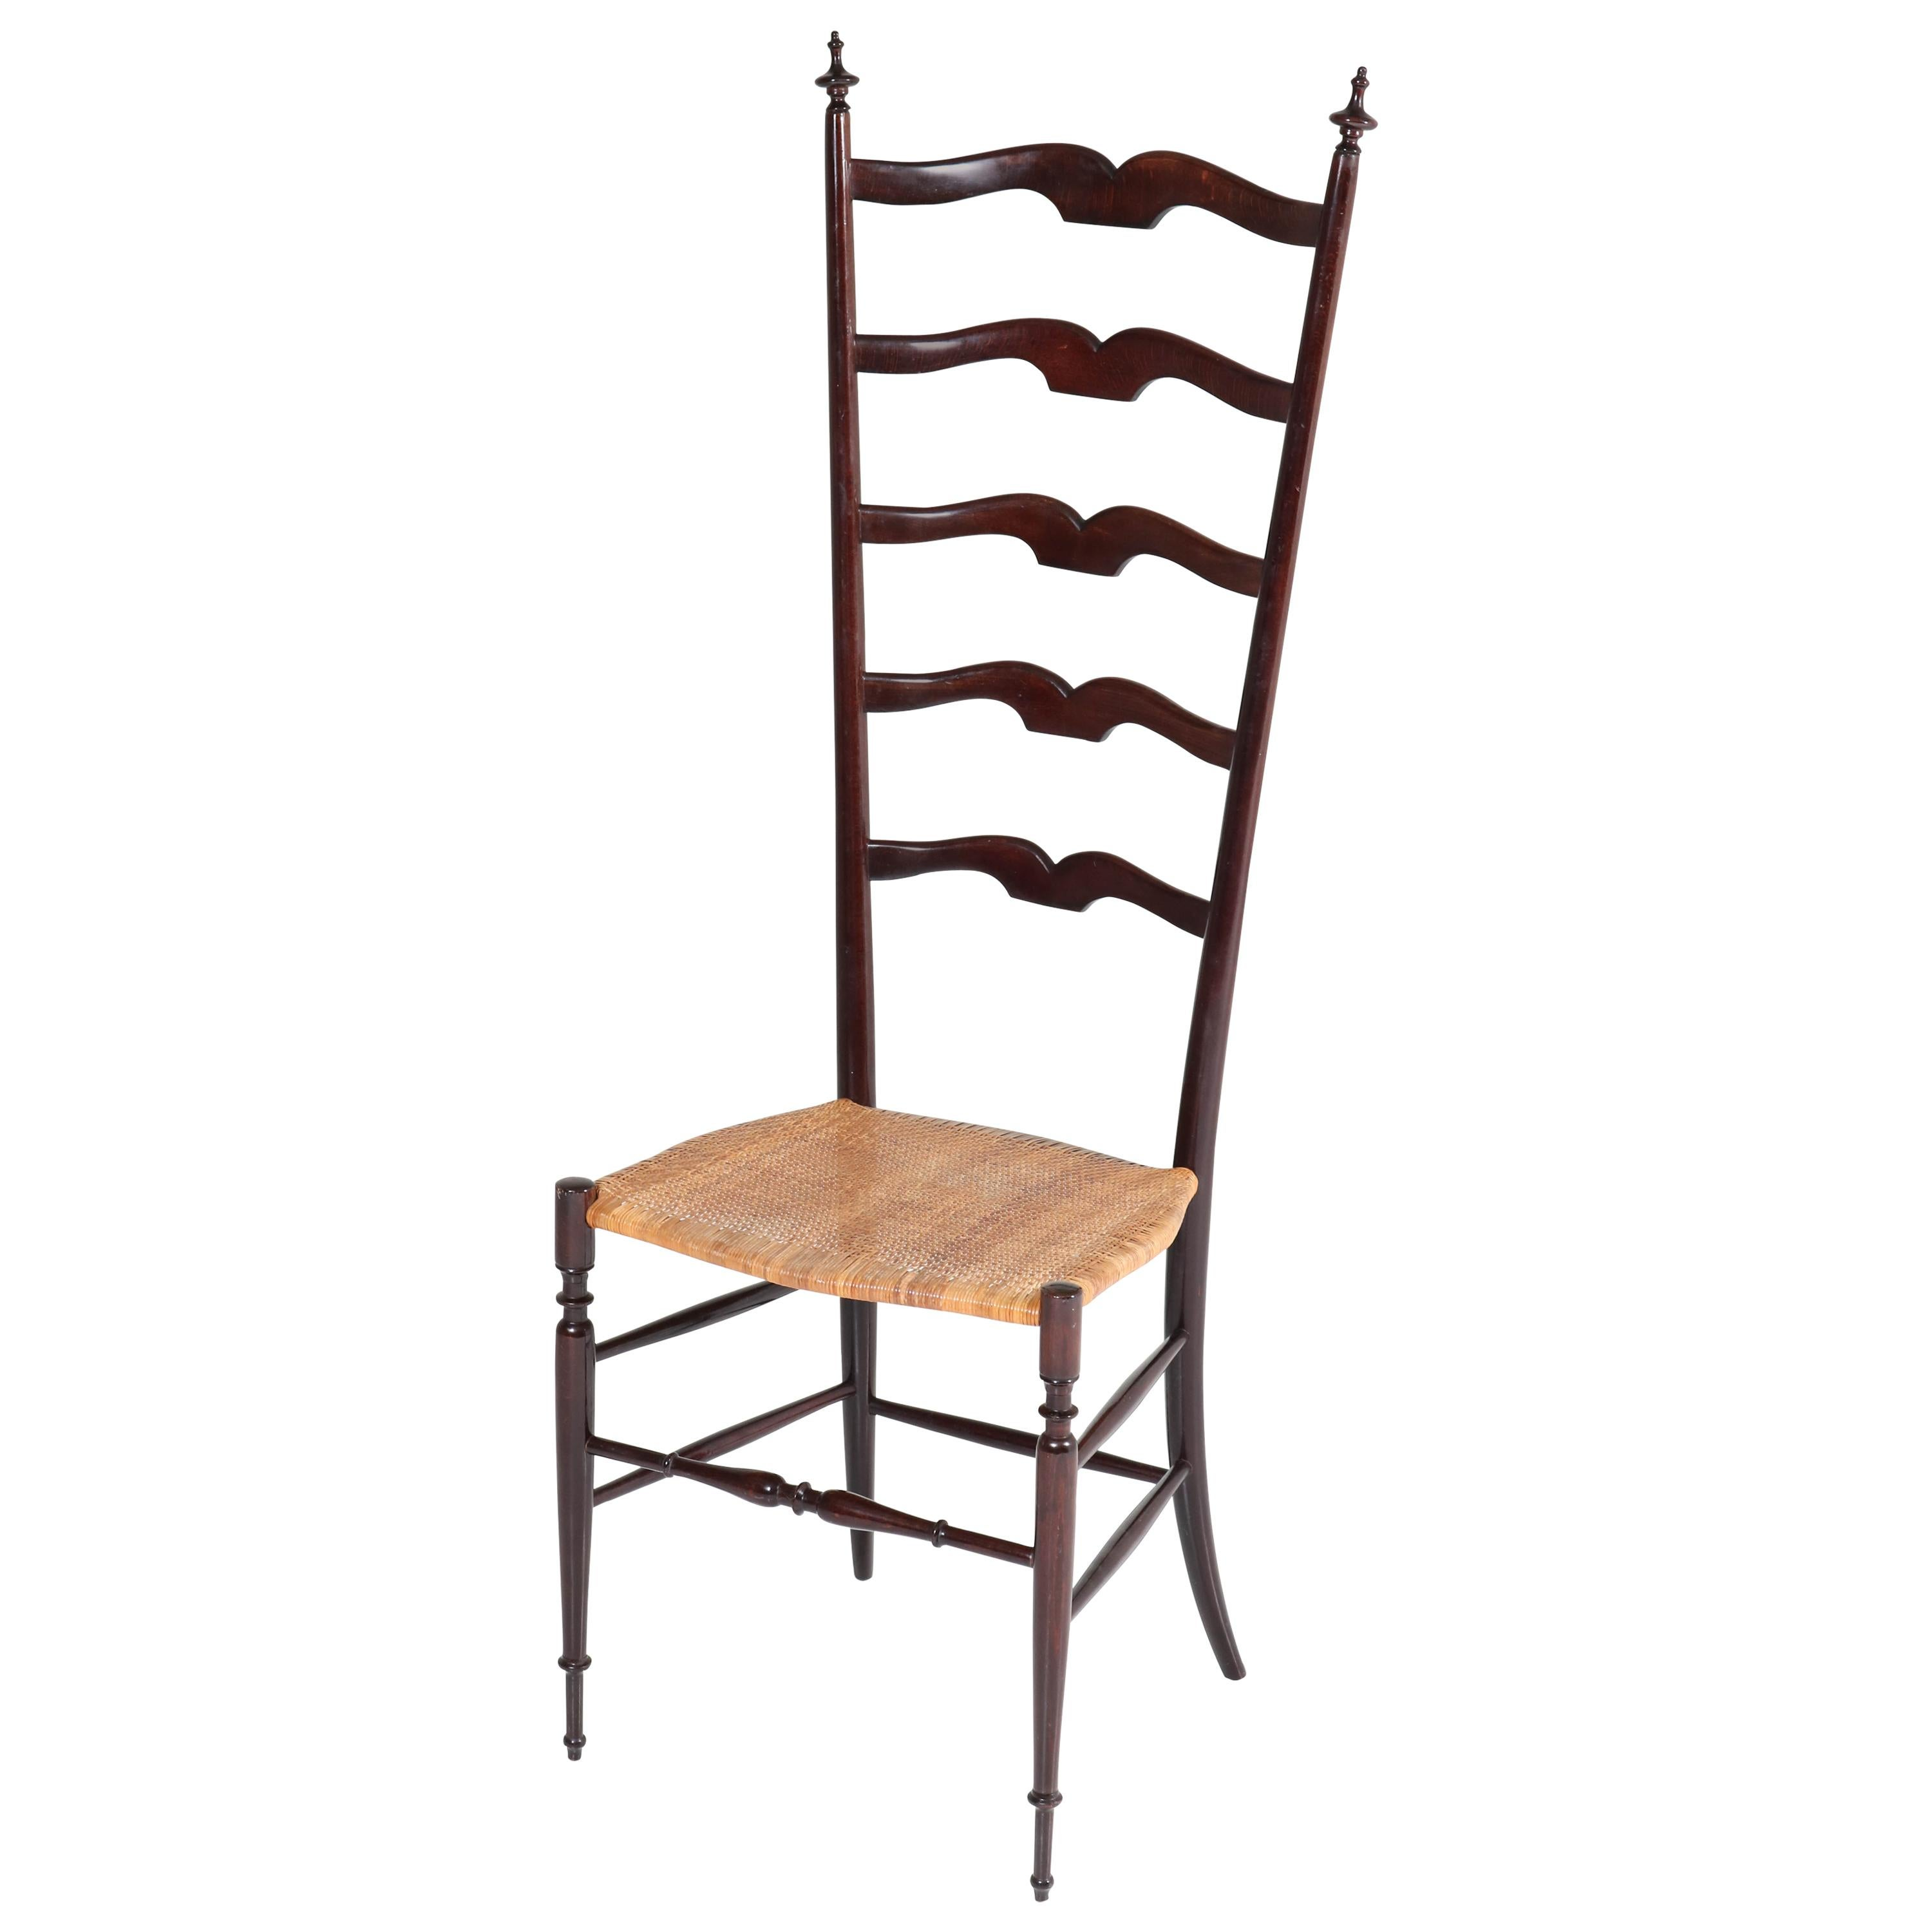 Italian Mid-Century Modern Chiavari Hall Chair Attributed to Paolo Buffa, 1950s